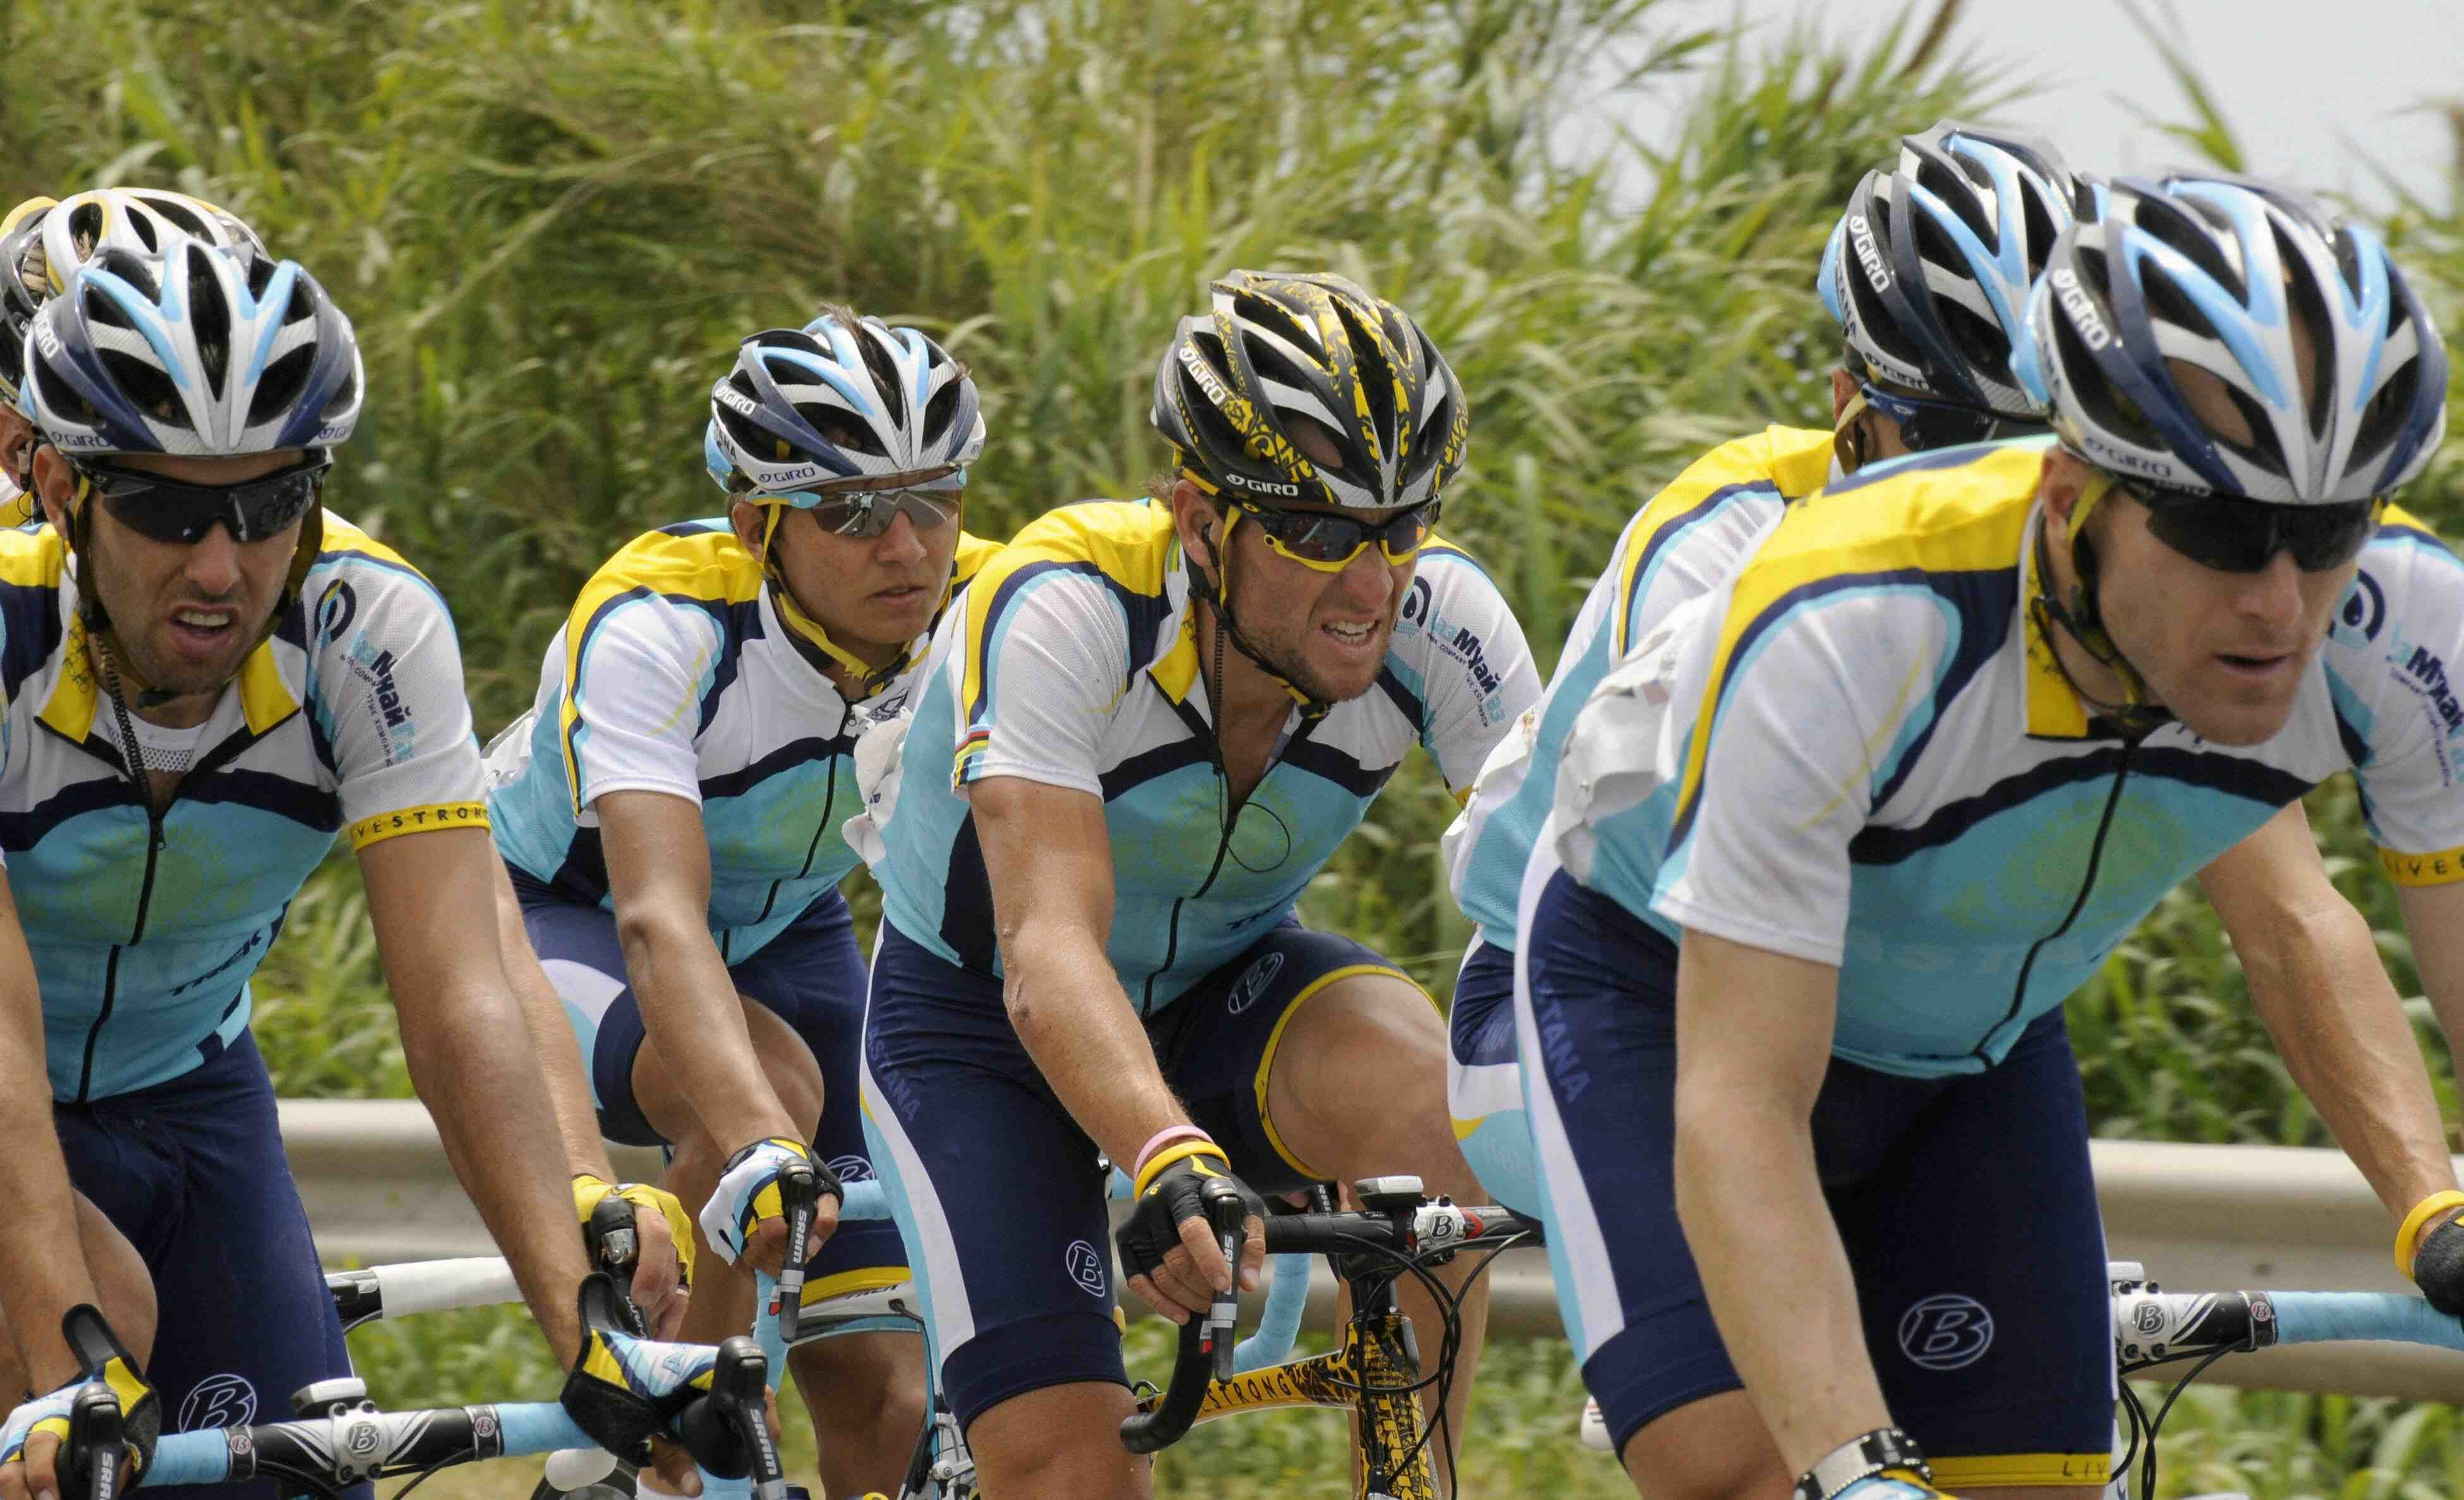 Armstrong's Astana team raced hard, despite the loss of Chris Horner and Levi Leipheimer's inability to keep up with the favourites in the final week.